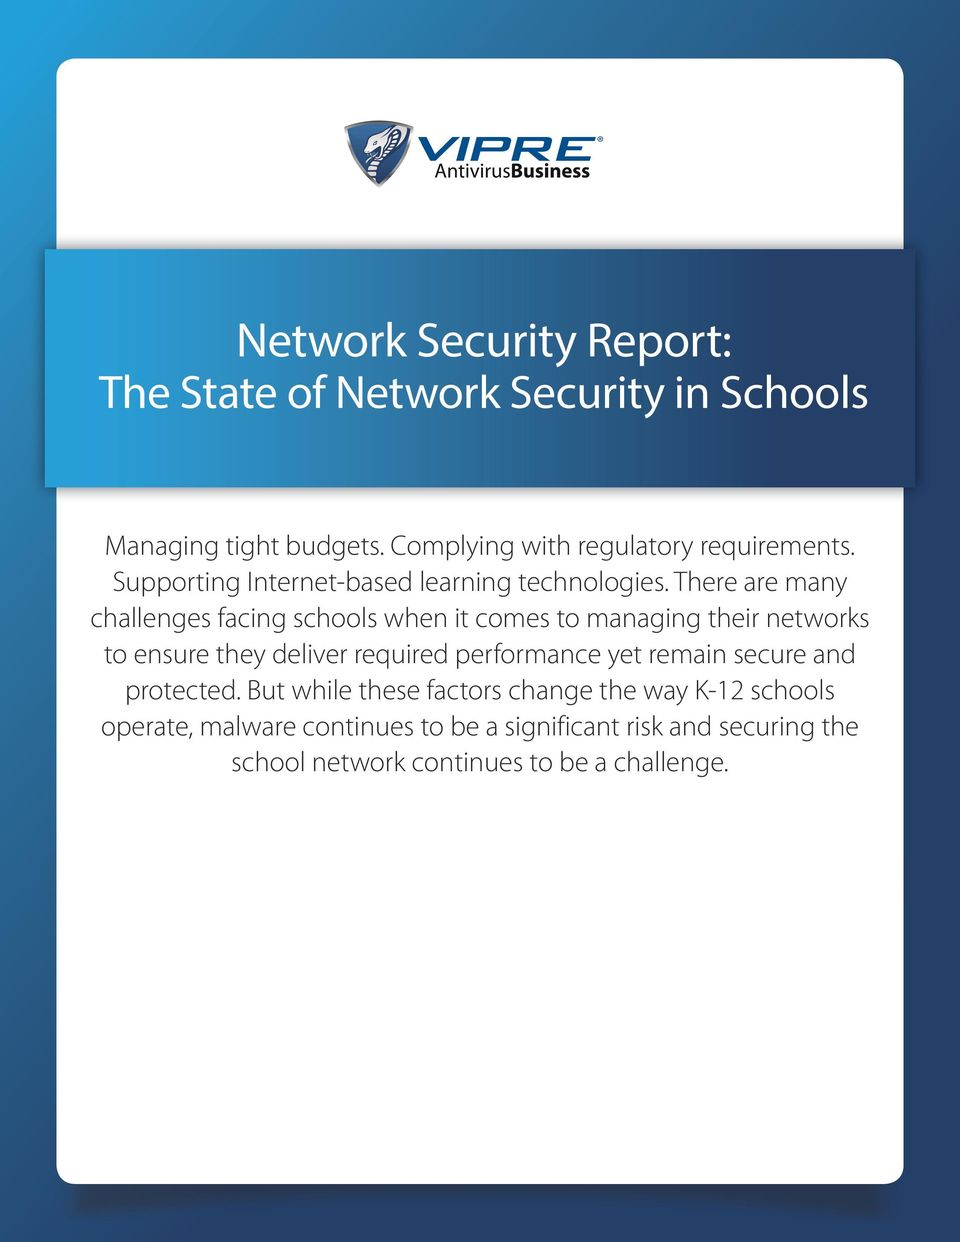 There are many challenges facing schools when it comes to managing their networks to ensure they deliver required performance